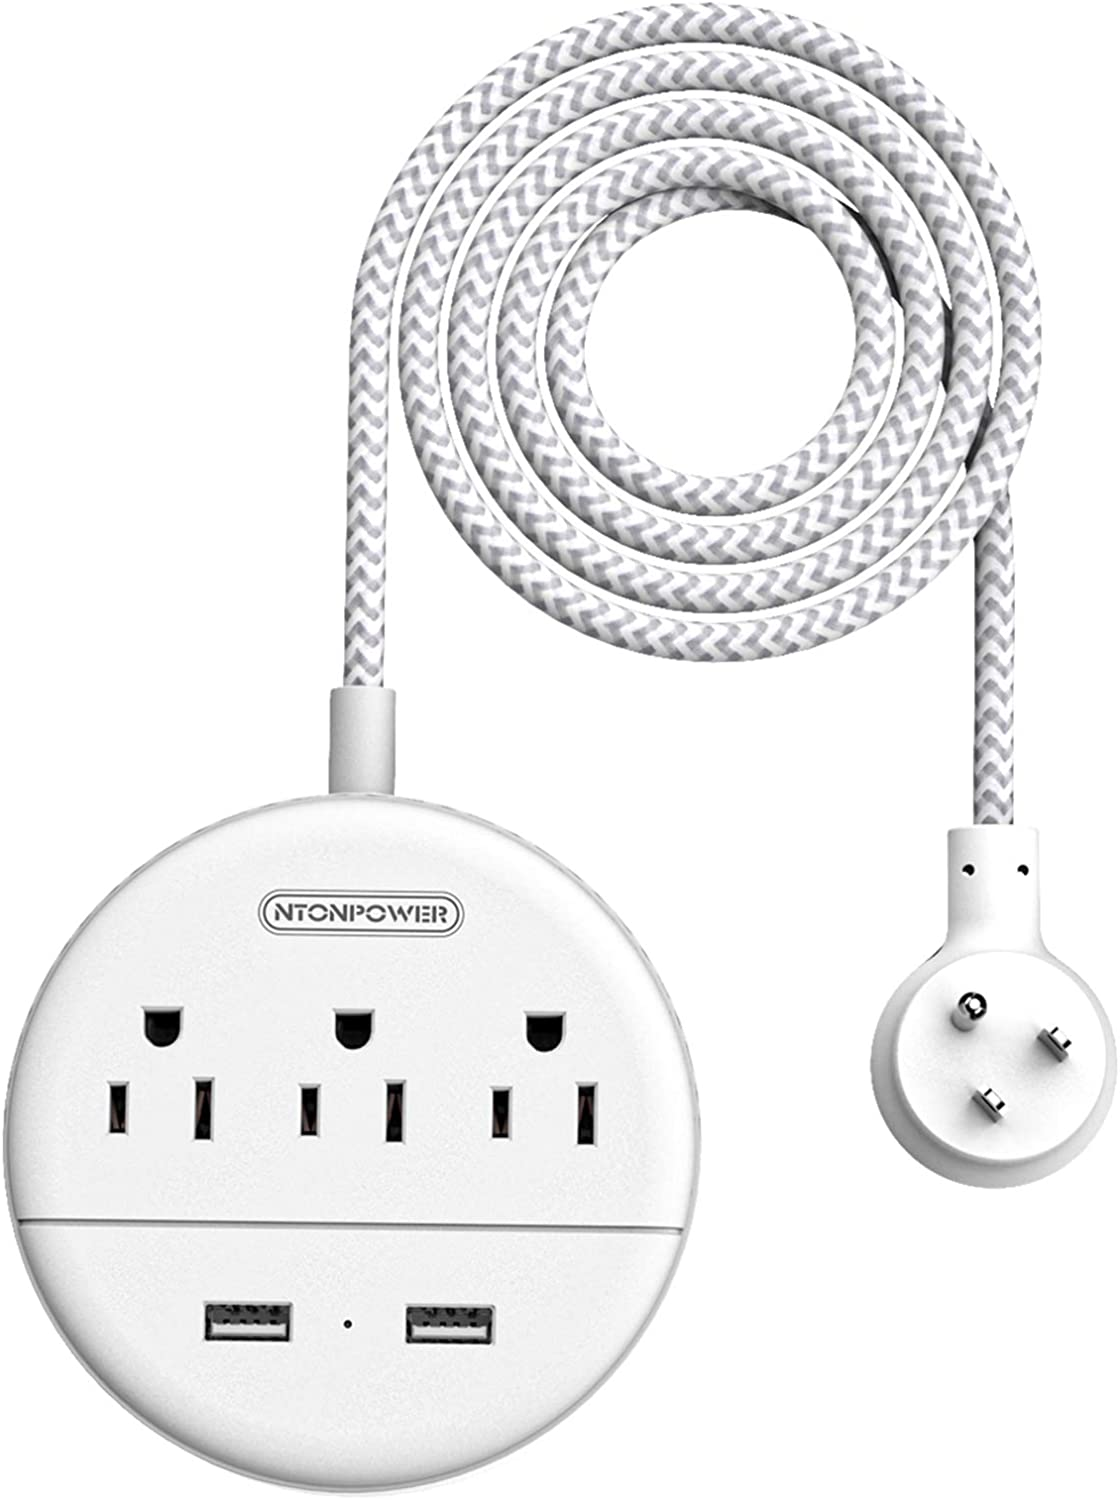 National products NTONPOWER Austin Mall Braided Power Strip Flat USB Nights Compact with Plug